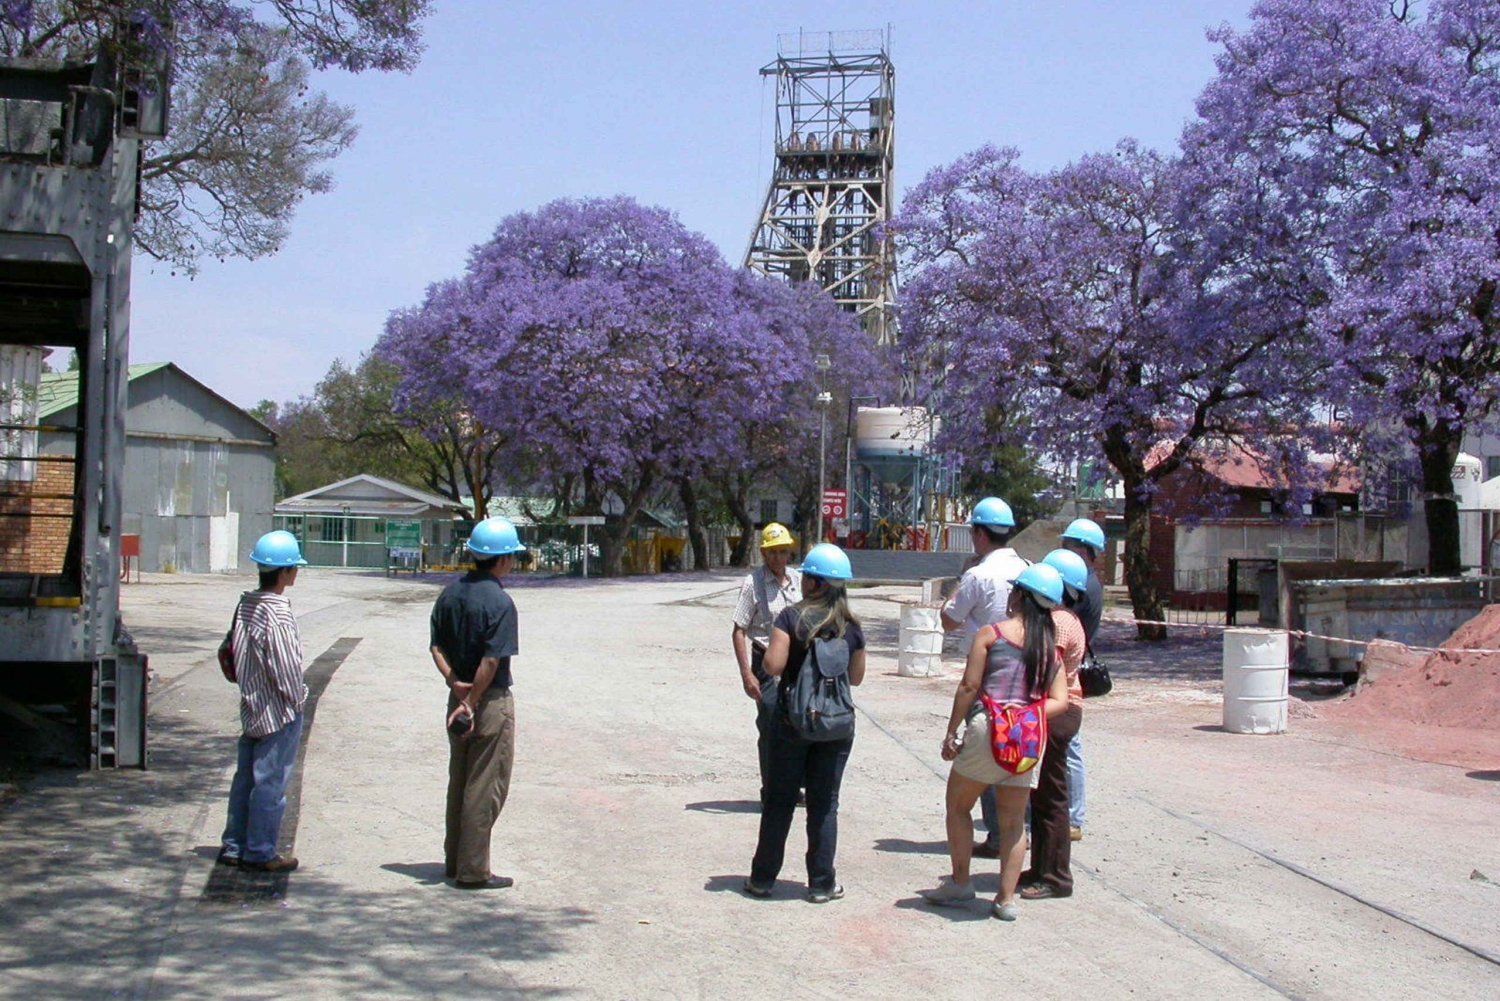 Cullinan Diamond Mine & Pretoria Full Day Tour